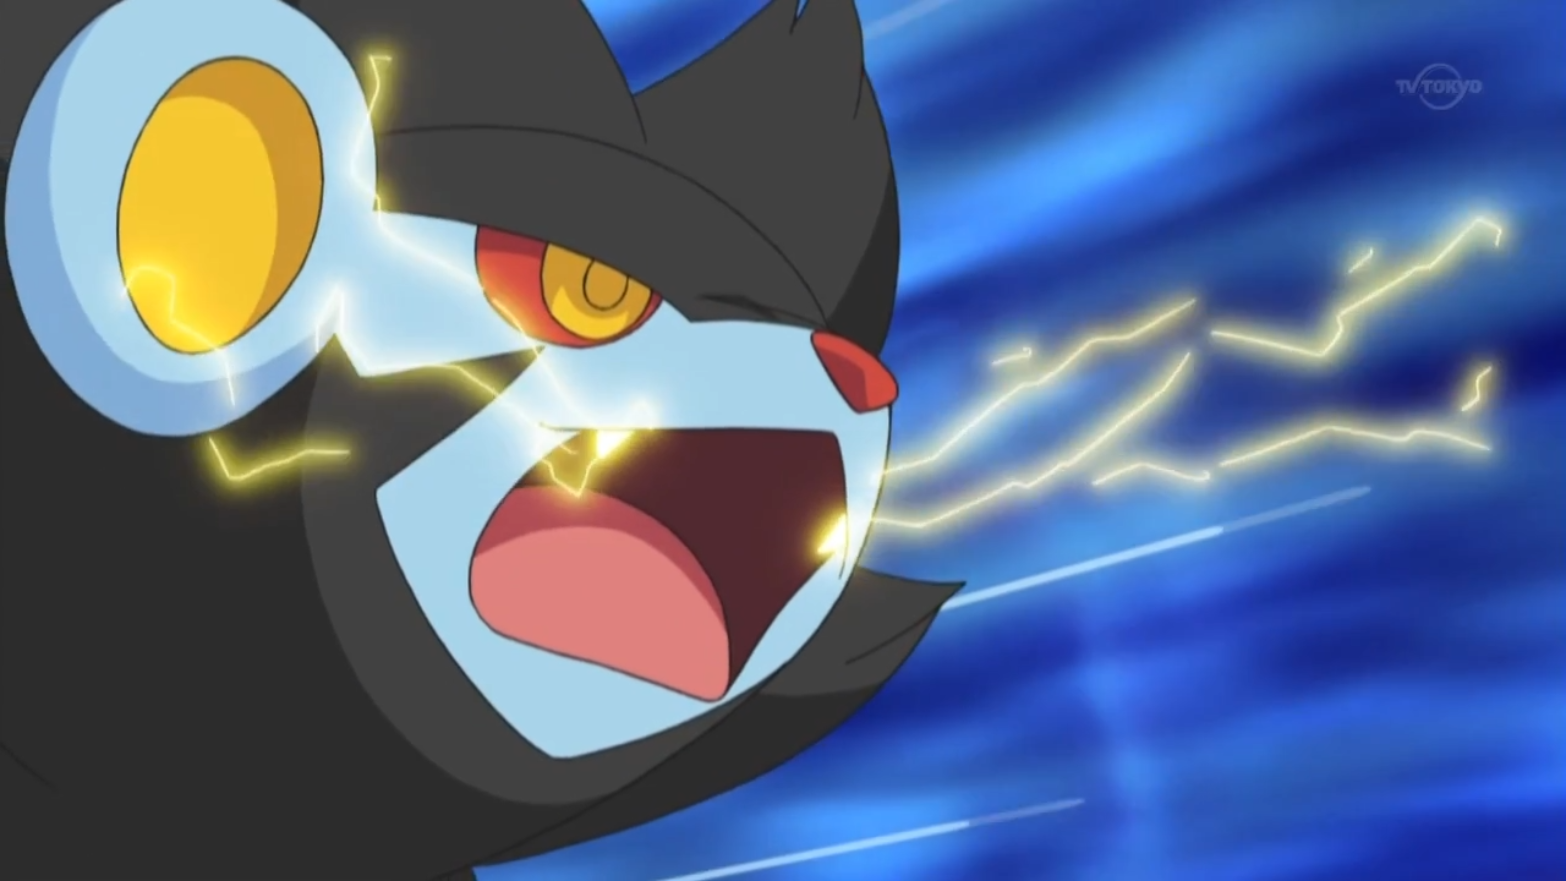 What moves can luxray learn - answers.com